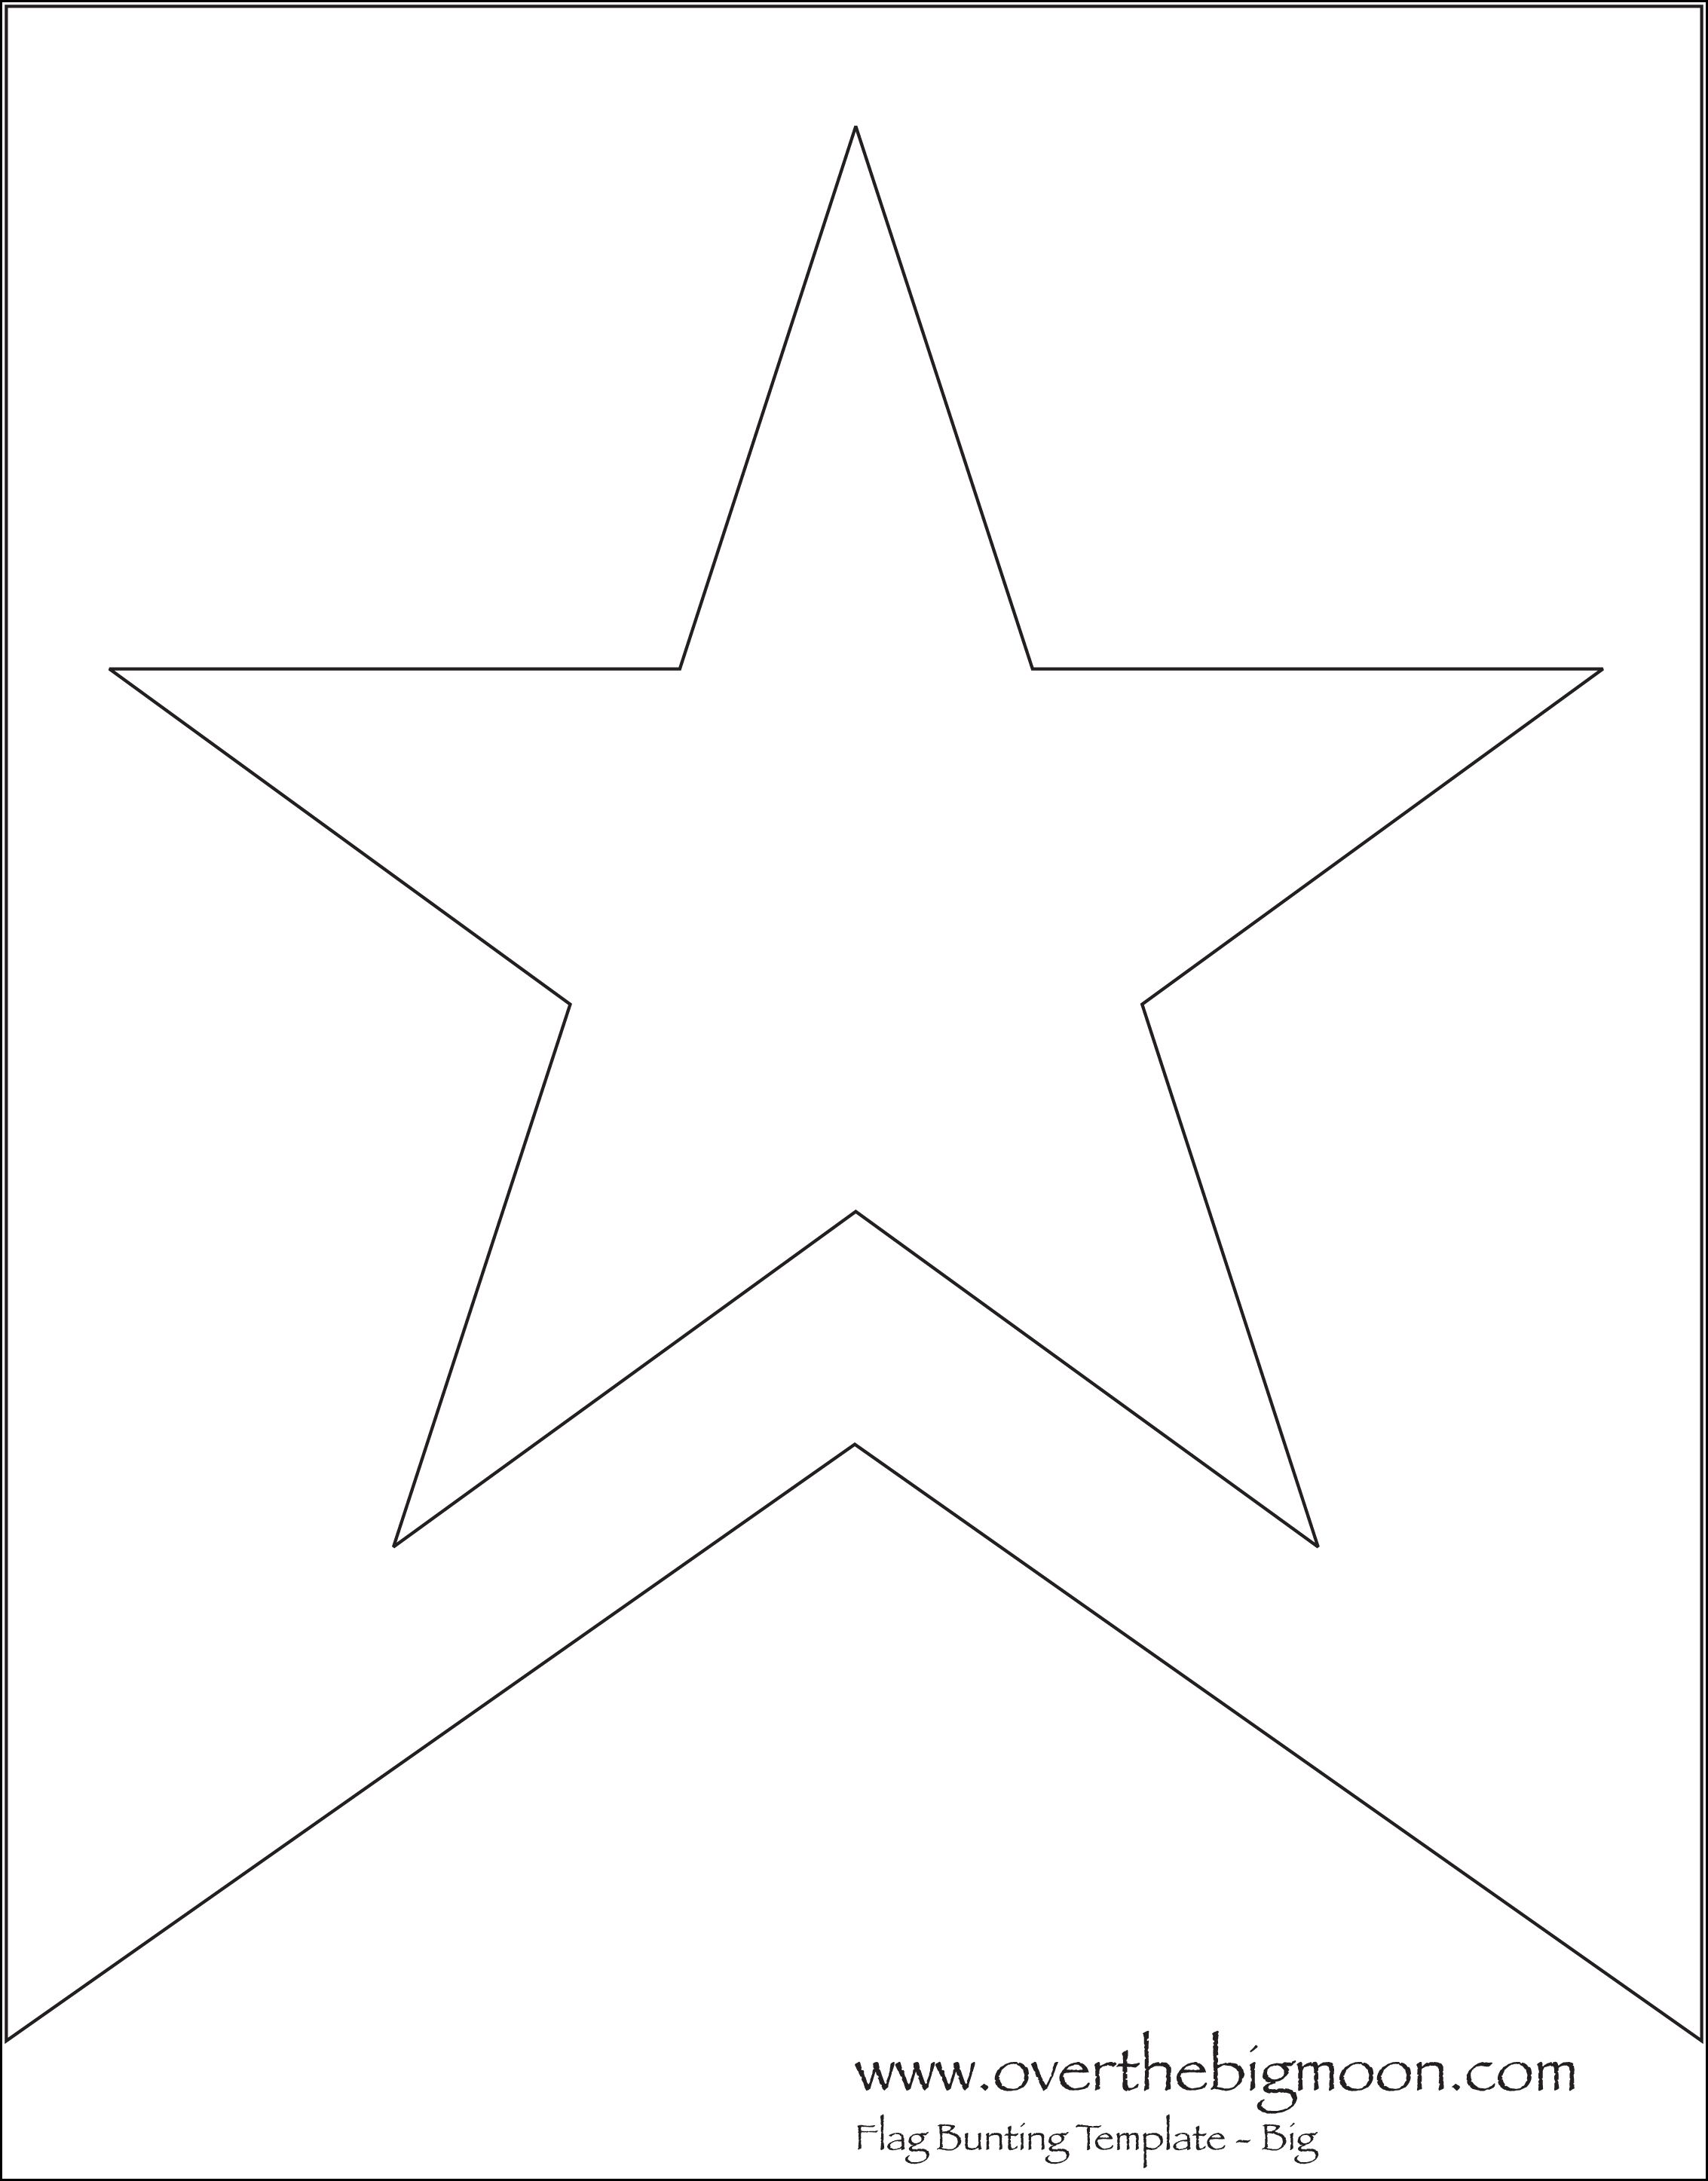 star bunting template perfect for 4th of july or anything star